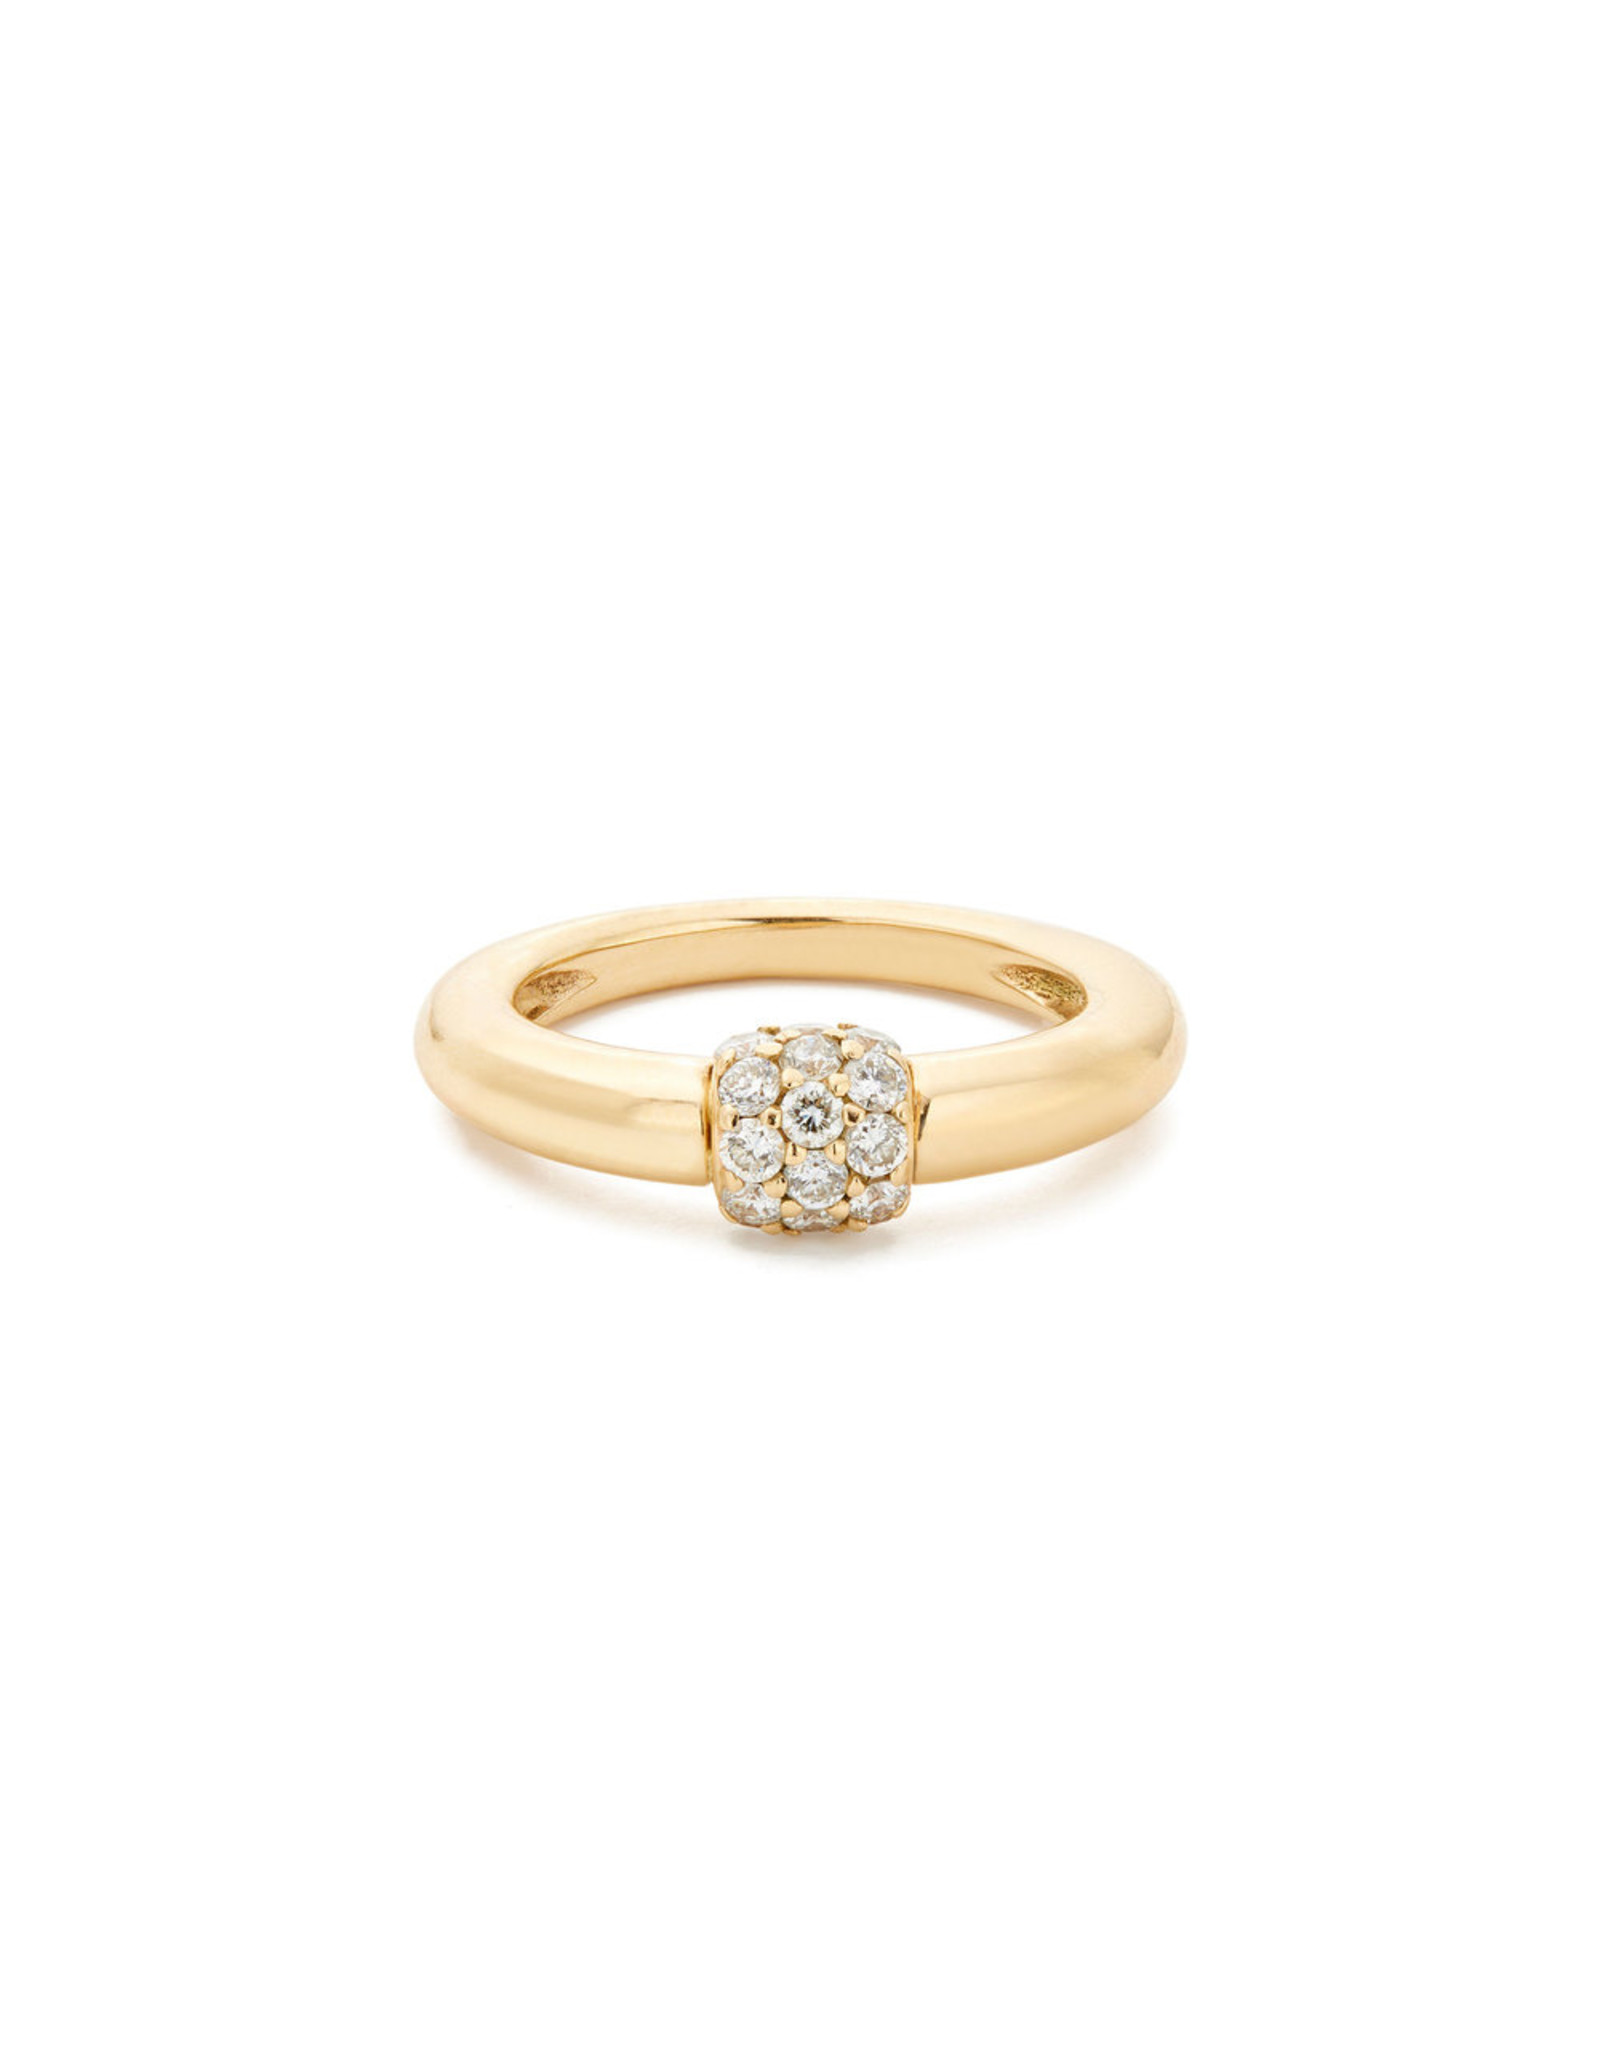 Sophie Ratner Sophie Ratner Triple Diamond Domed Ring (Color: Yellow Gold / Pave, Size: 5)